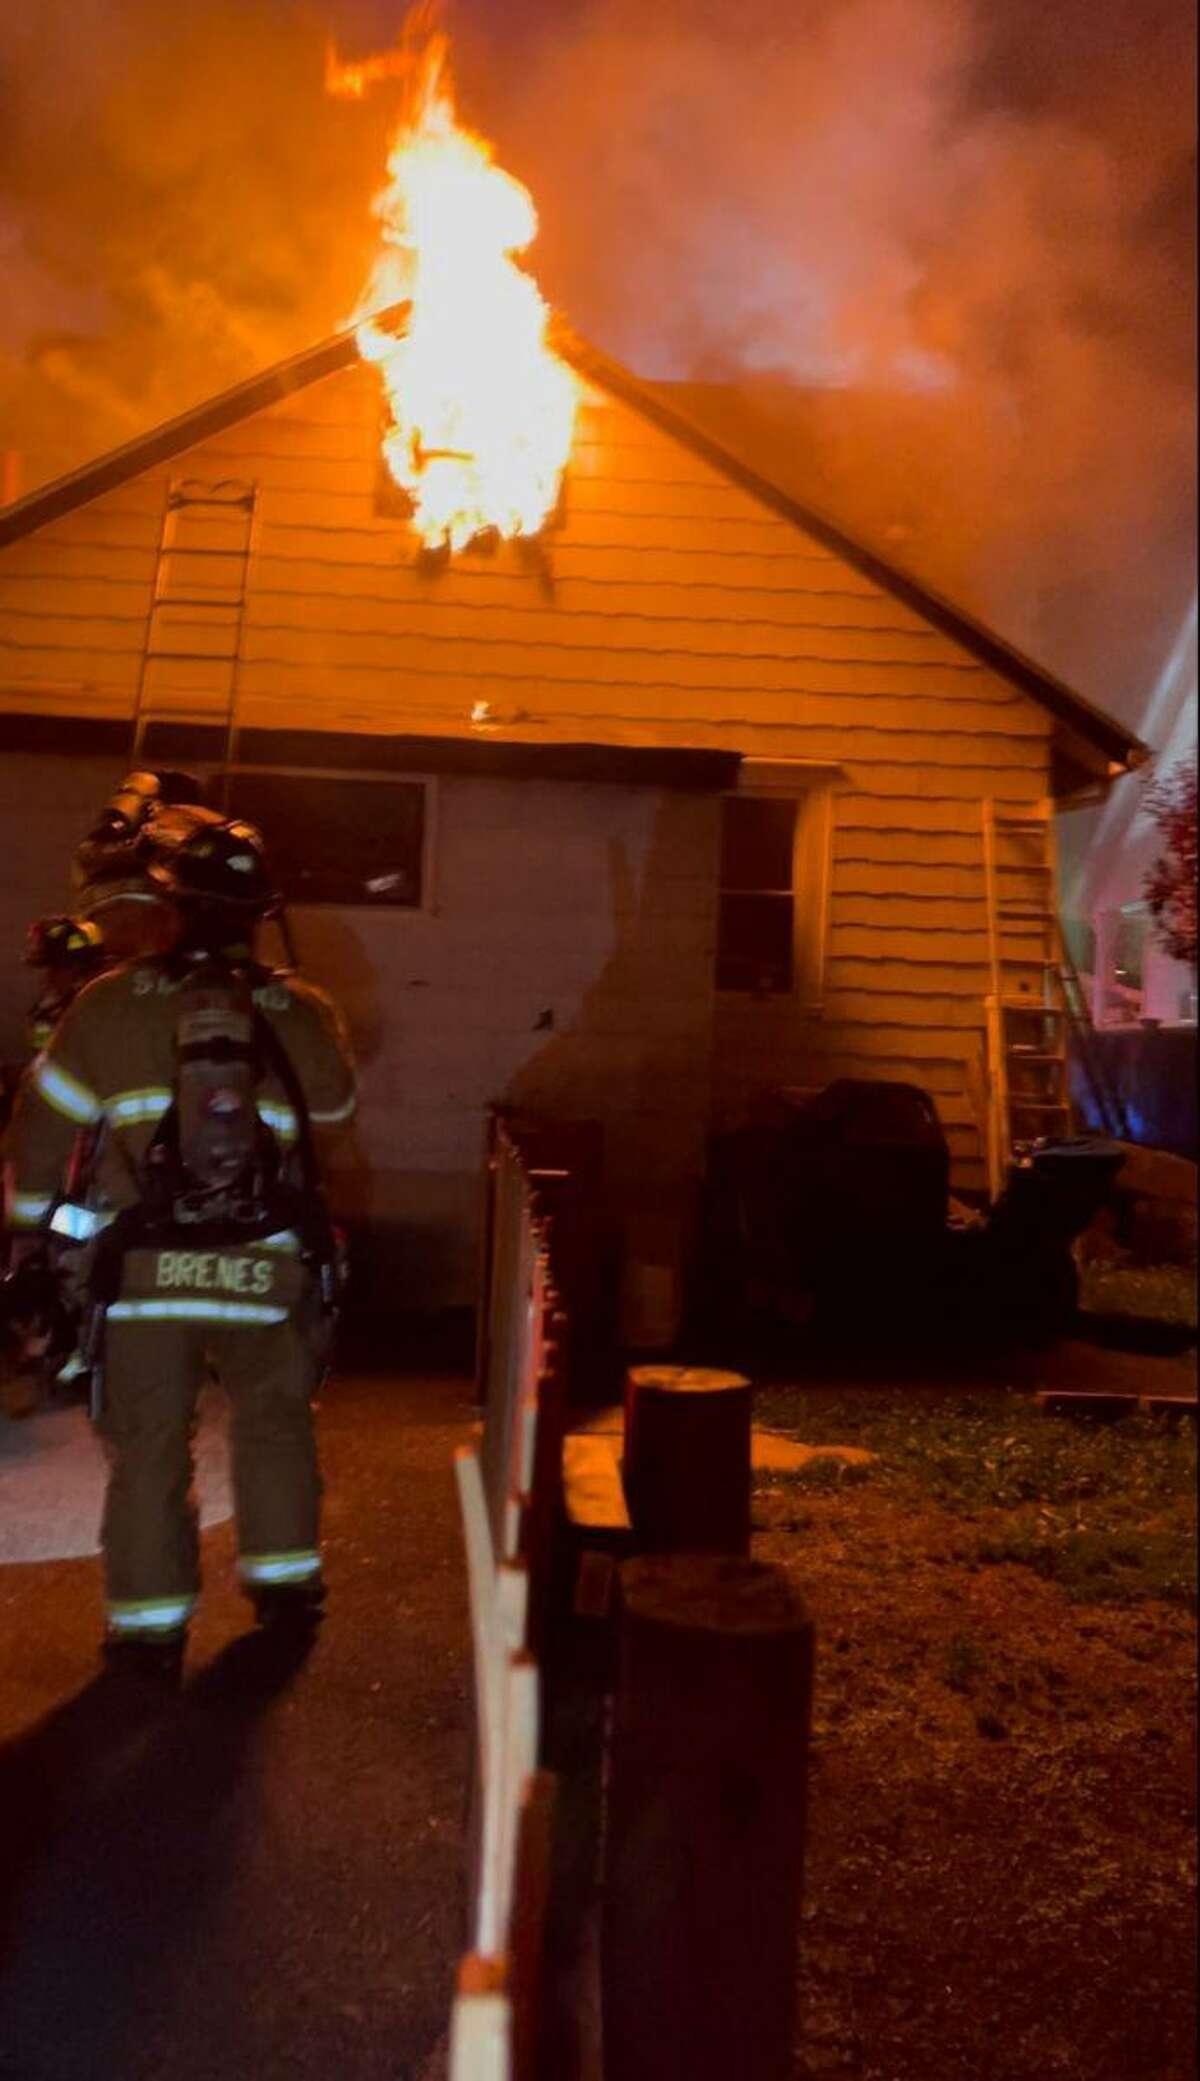 Stamford firefighters rescued several animals from a house fire in Stamford's East Side on Thursday night.